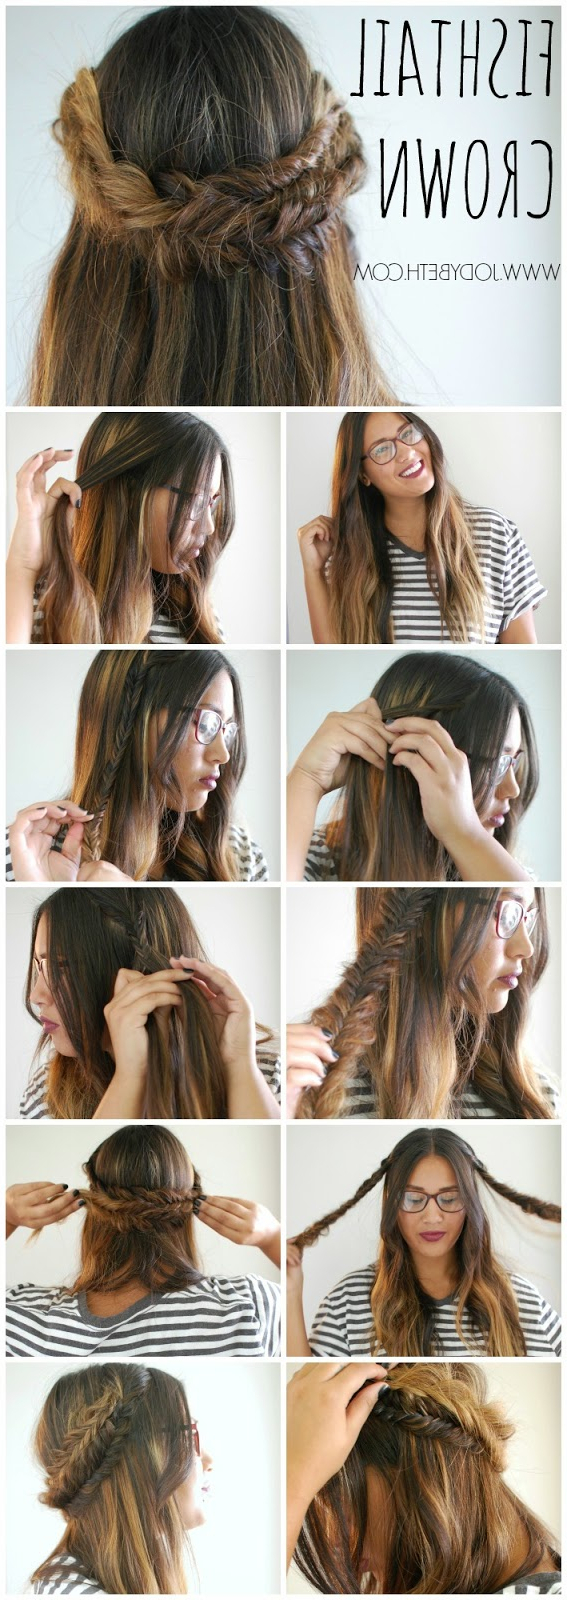 Bloglovin' Pertaining To Best And Newest Fishtail Crown Braid Hairstyles (View 4 of 20)